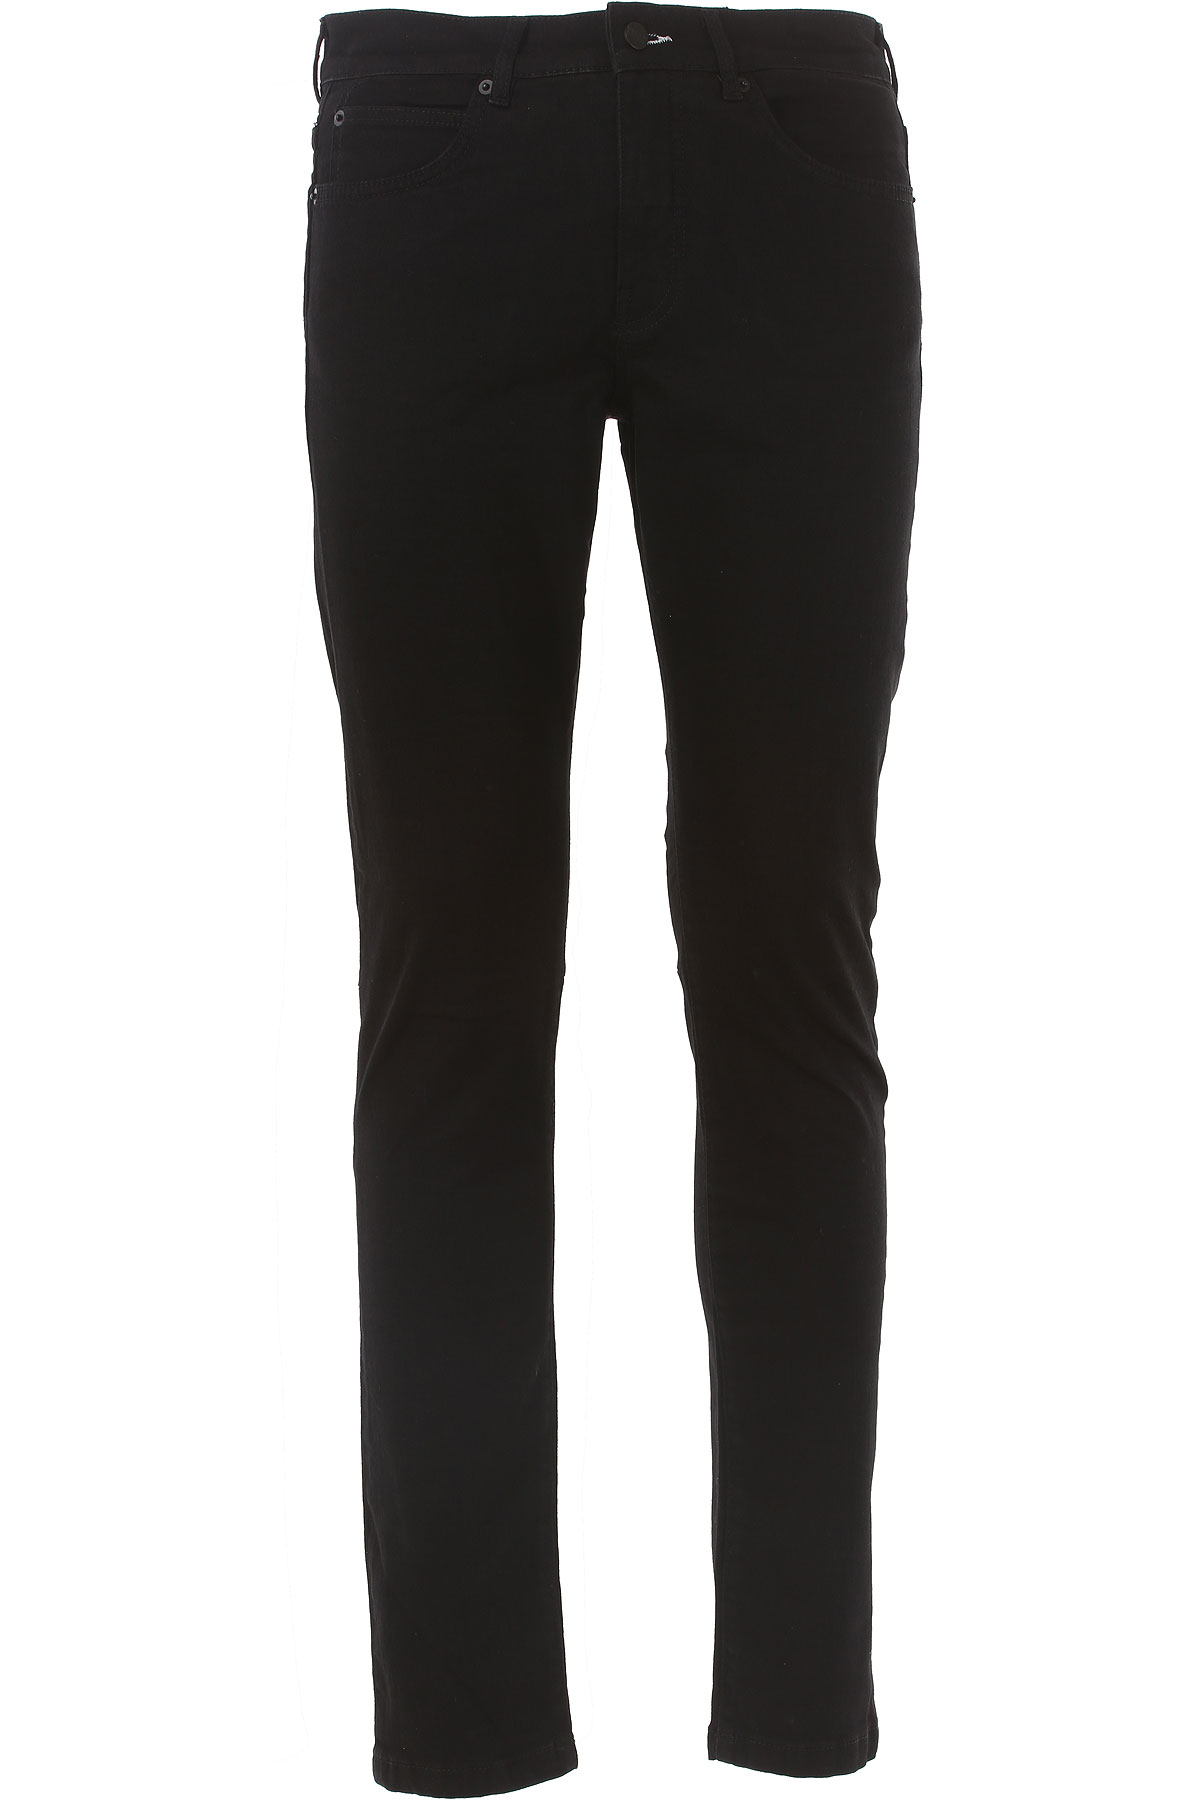 Image of Alexander McQueen McQ Jeans On Sale, Black, Cotton, 2017, 30 31 34 35